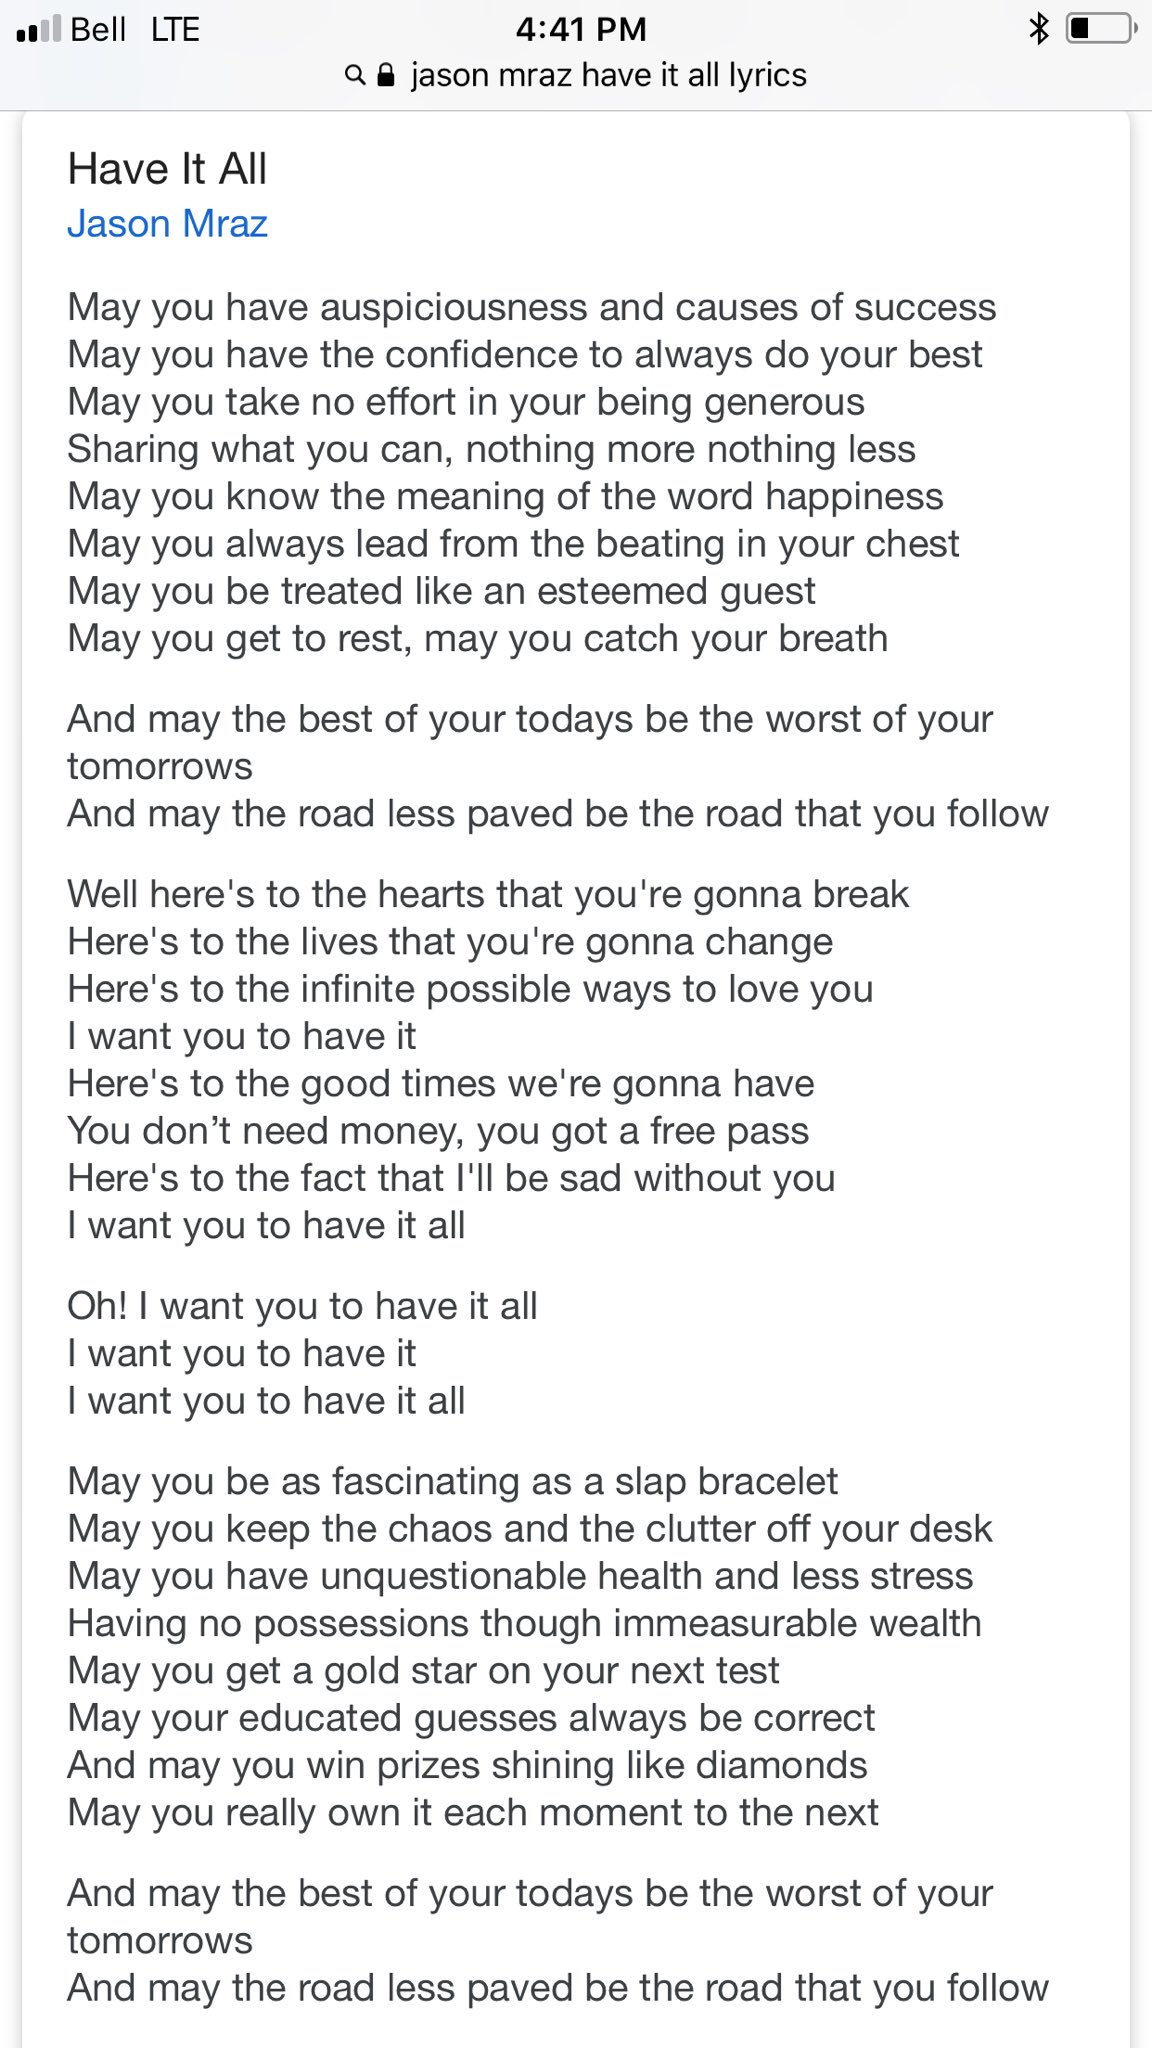 i want you to have it all lyrics